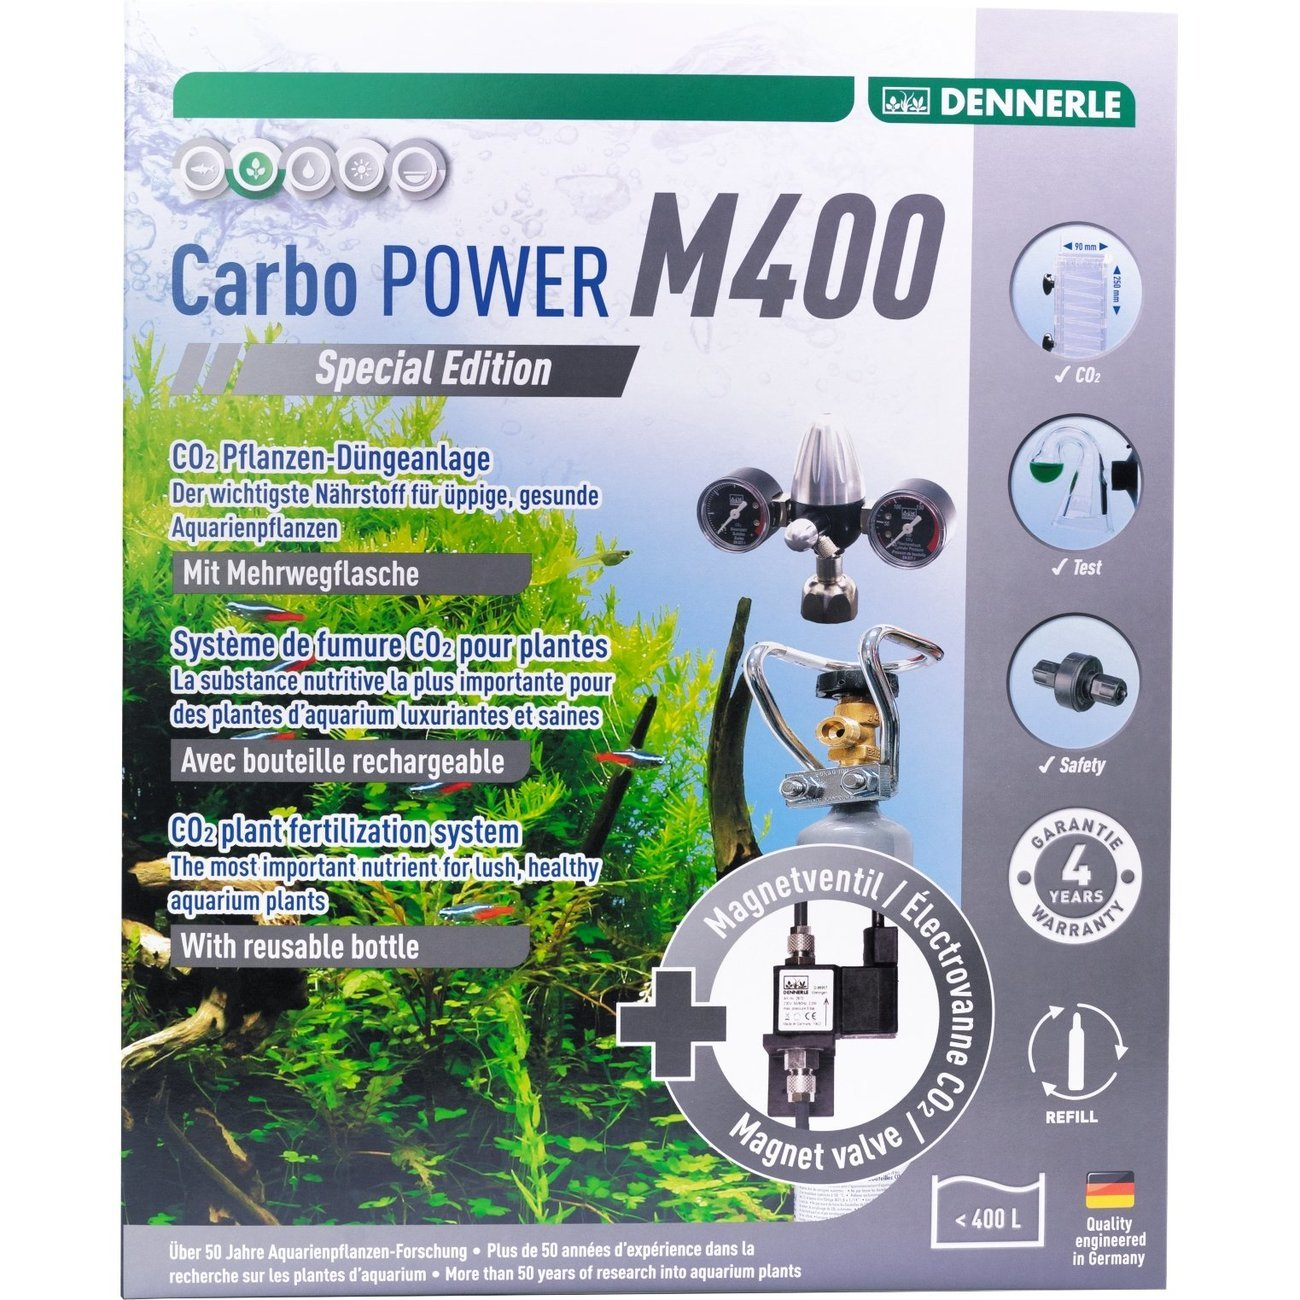 Dennerle Carbo POWER M400 SE Preview Image